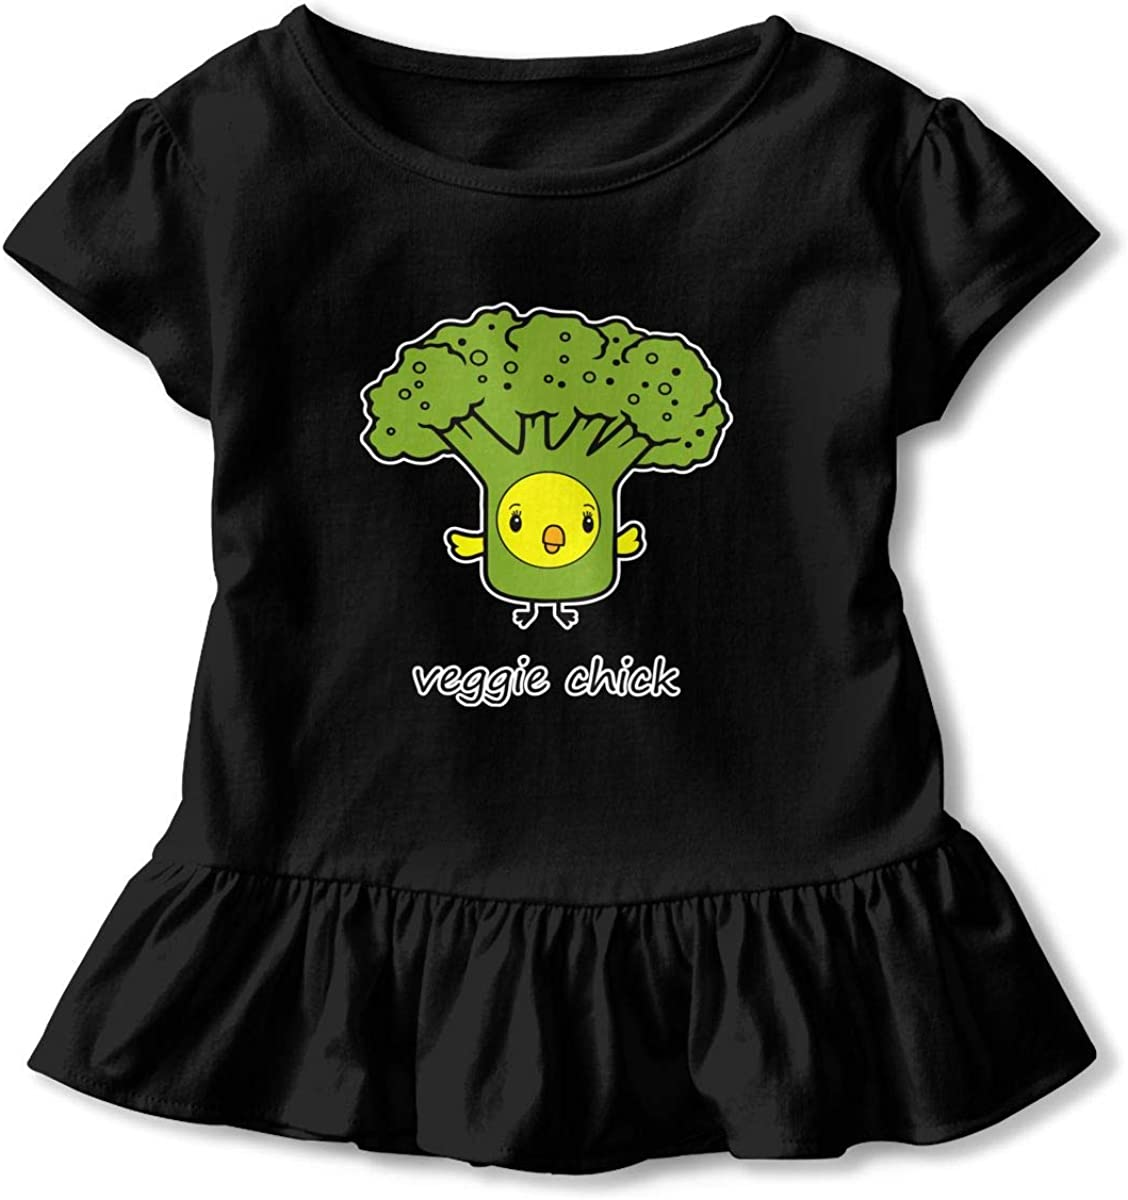 Veggie Chick Baby Flounces Skirts Kids Fashion T Shirt Dress Breathable Outfits